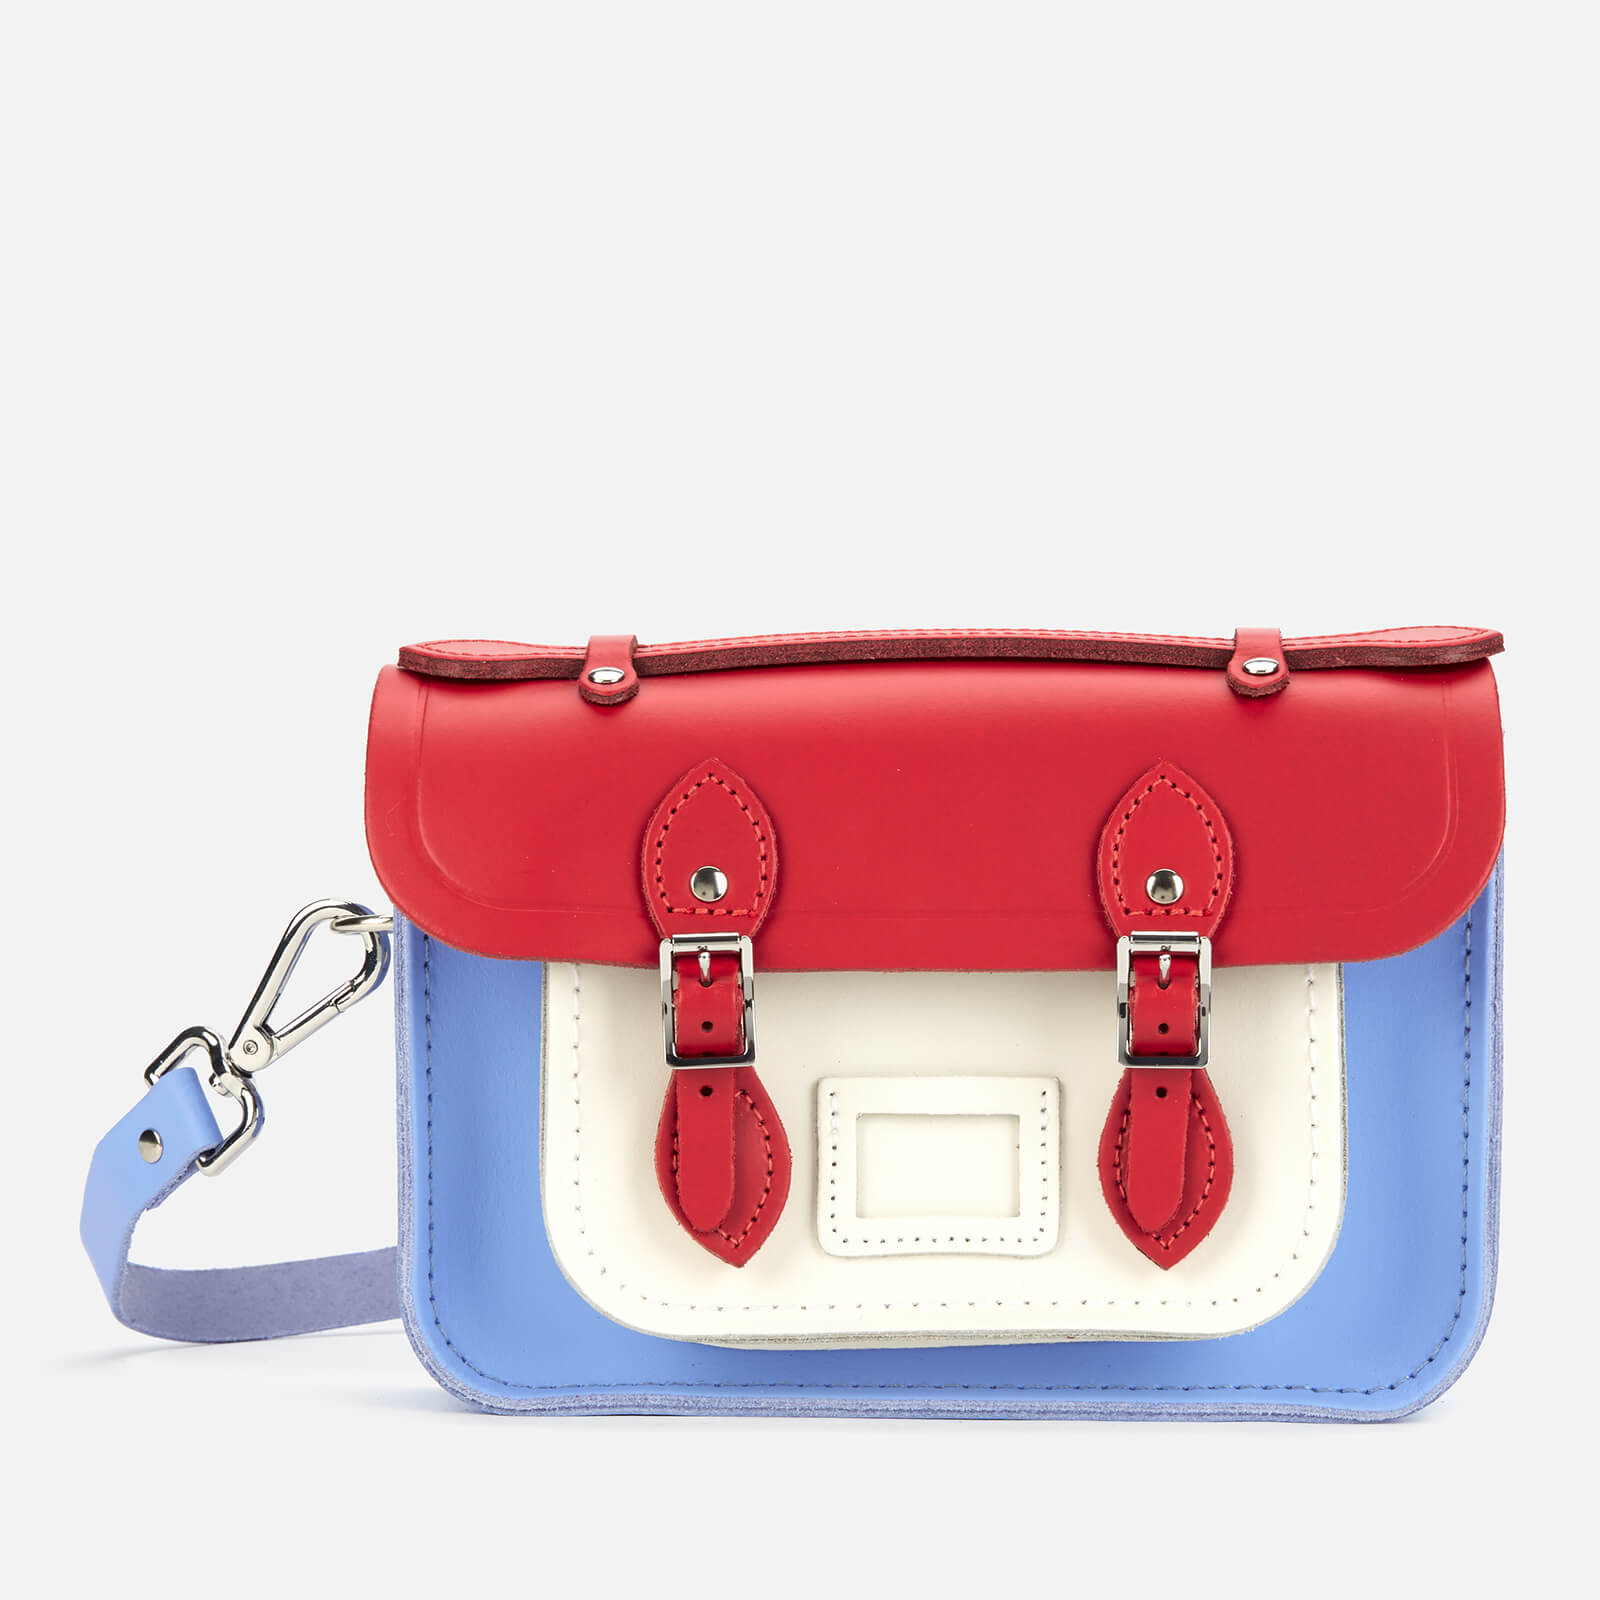 Mybag:精选 The Cambridge Satchel Company 剑桥包 新款上新